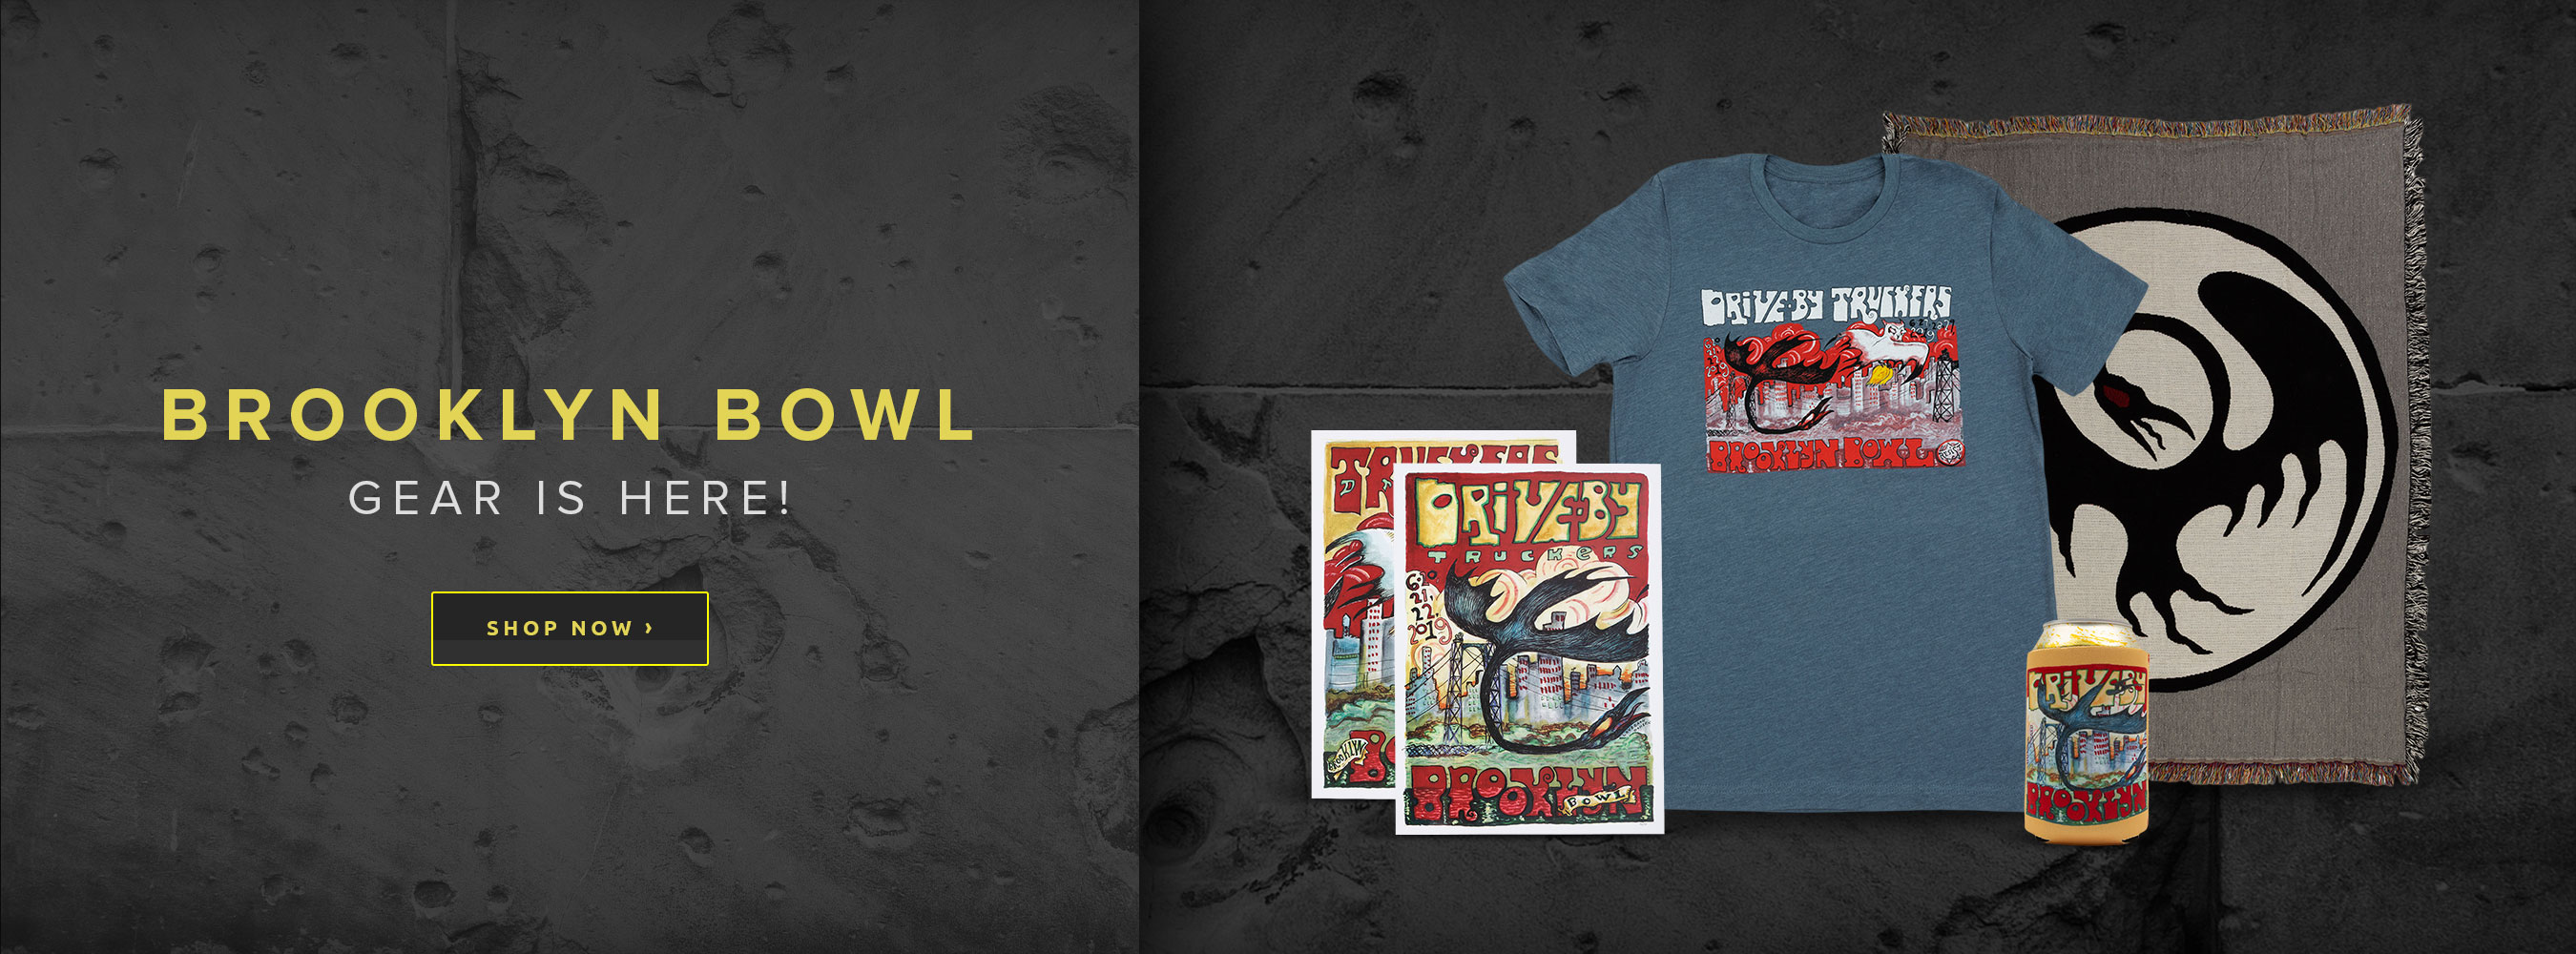 DBT Brooklyn Bowl 2019 Merchandise Now Available